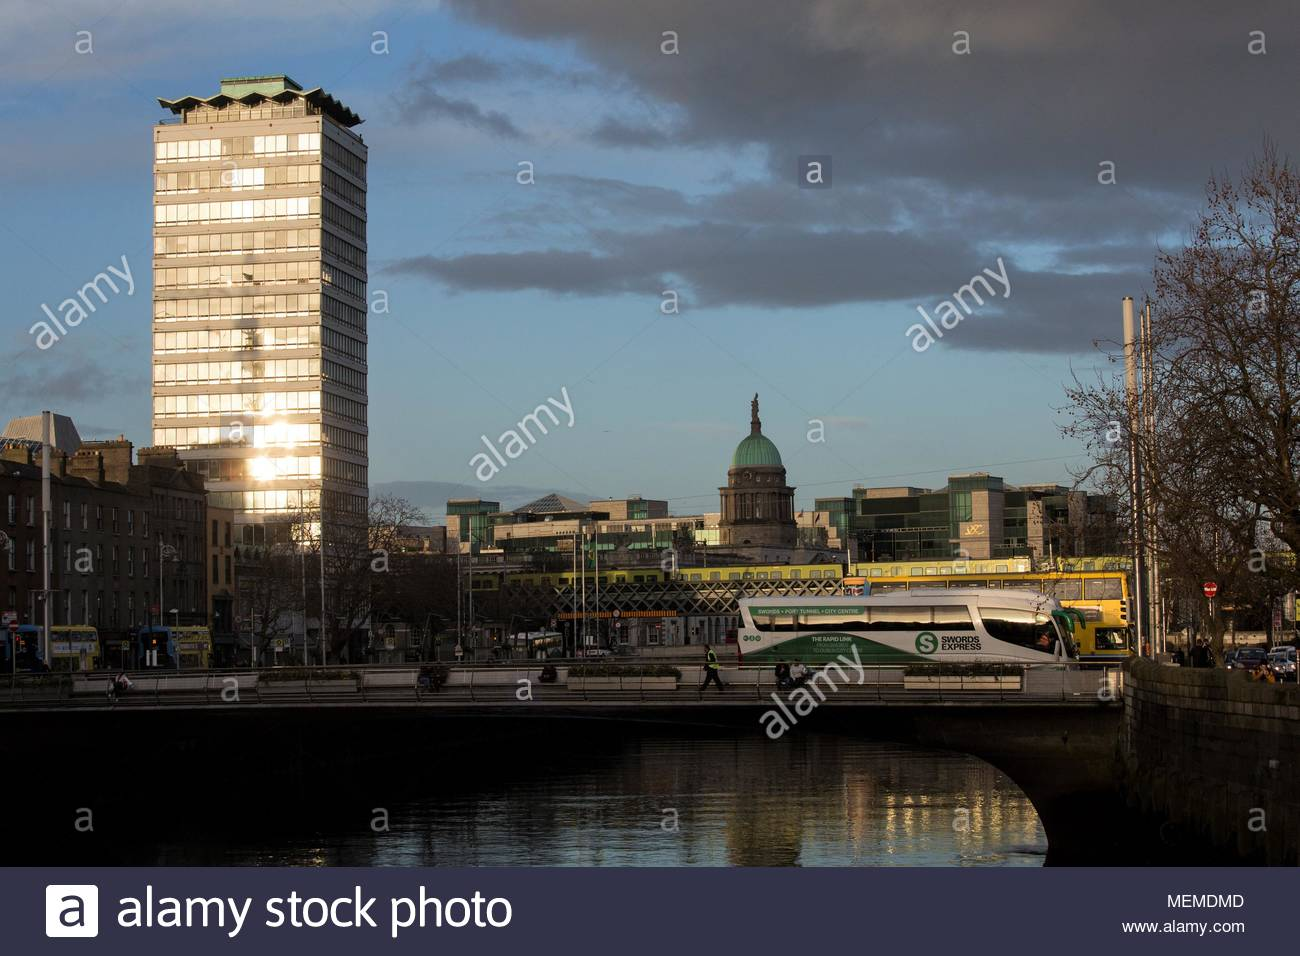 A beautiful evening scene in Dublin showing homebound traffic as light bounces off Liberty Hall. Credit reallifephotos/Alamy - Stock Image